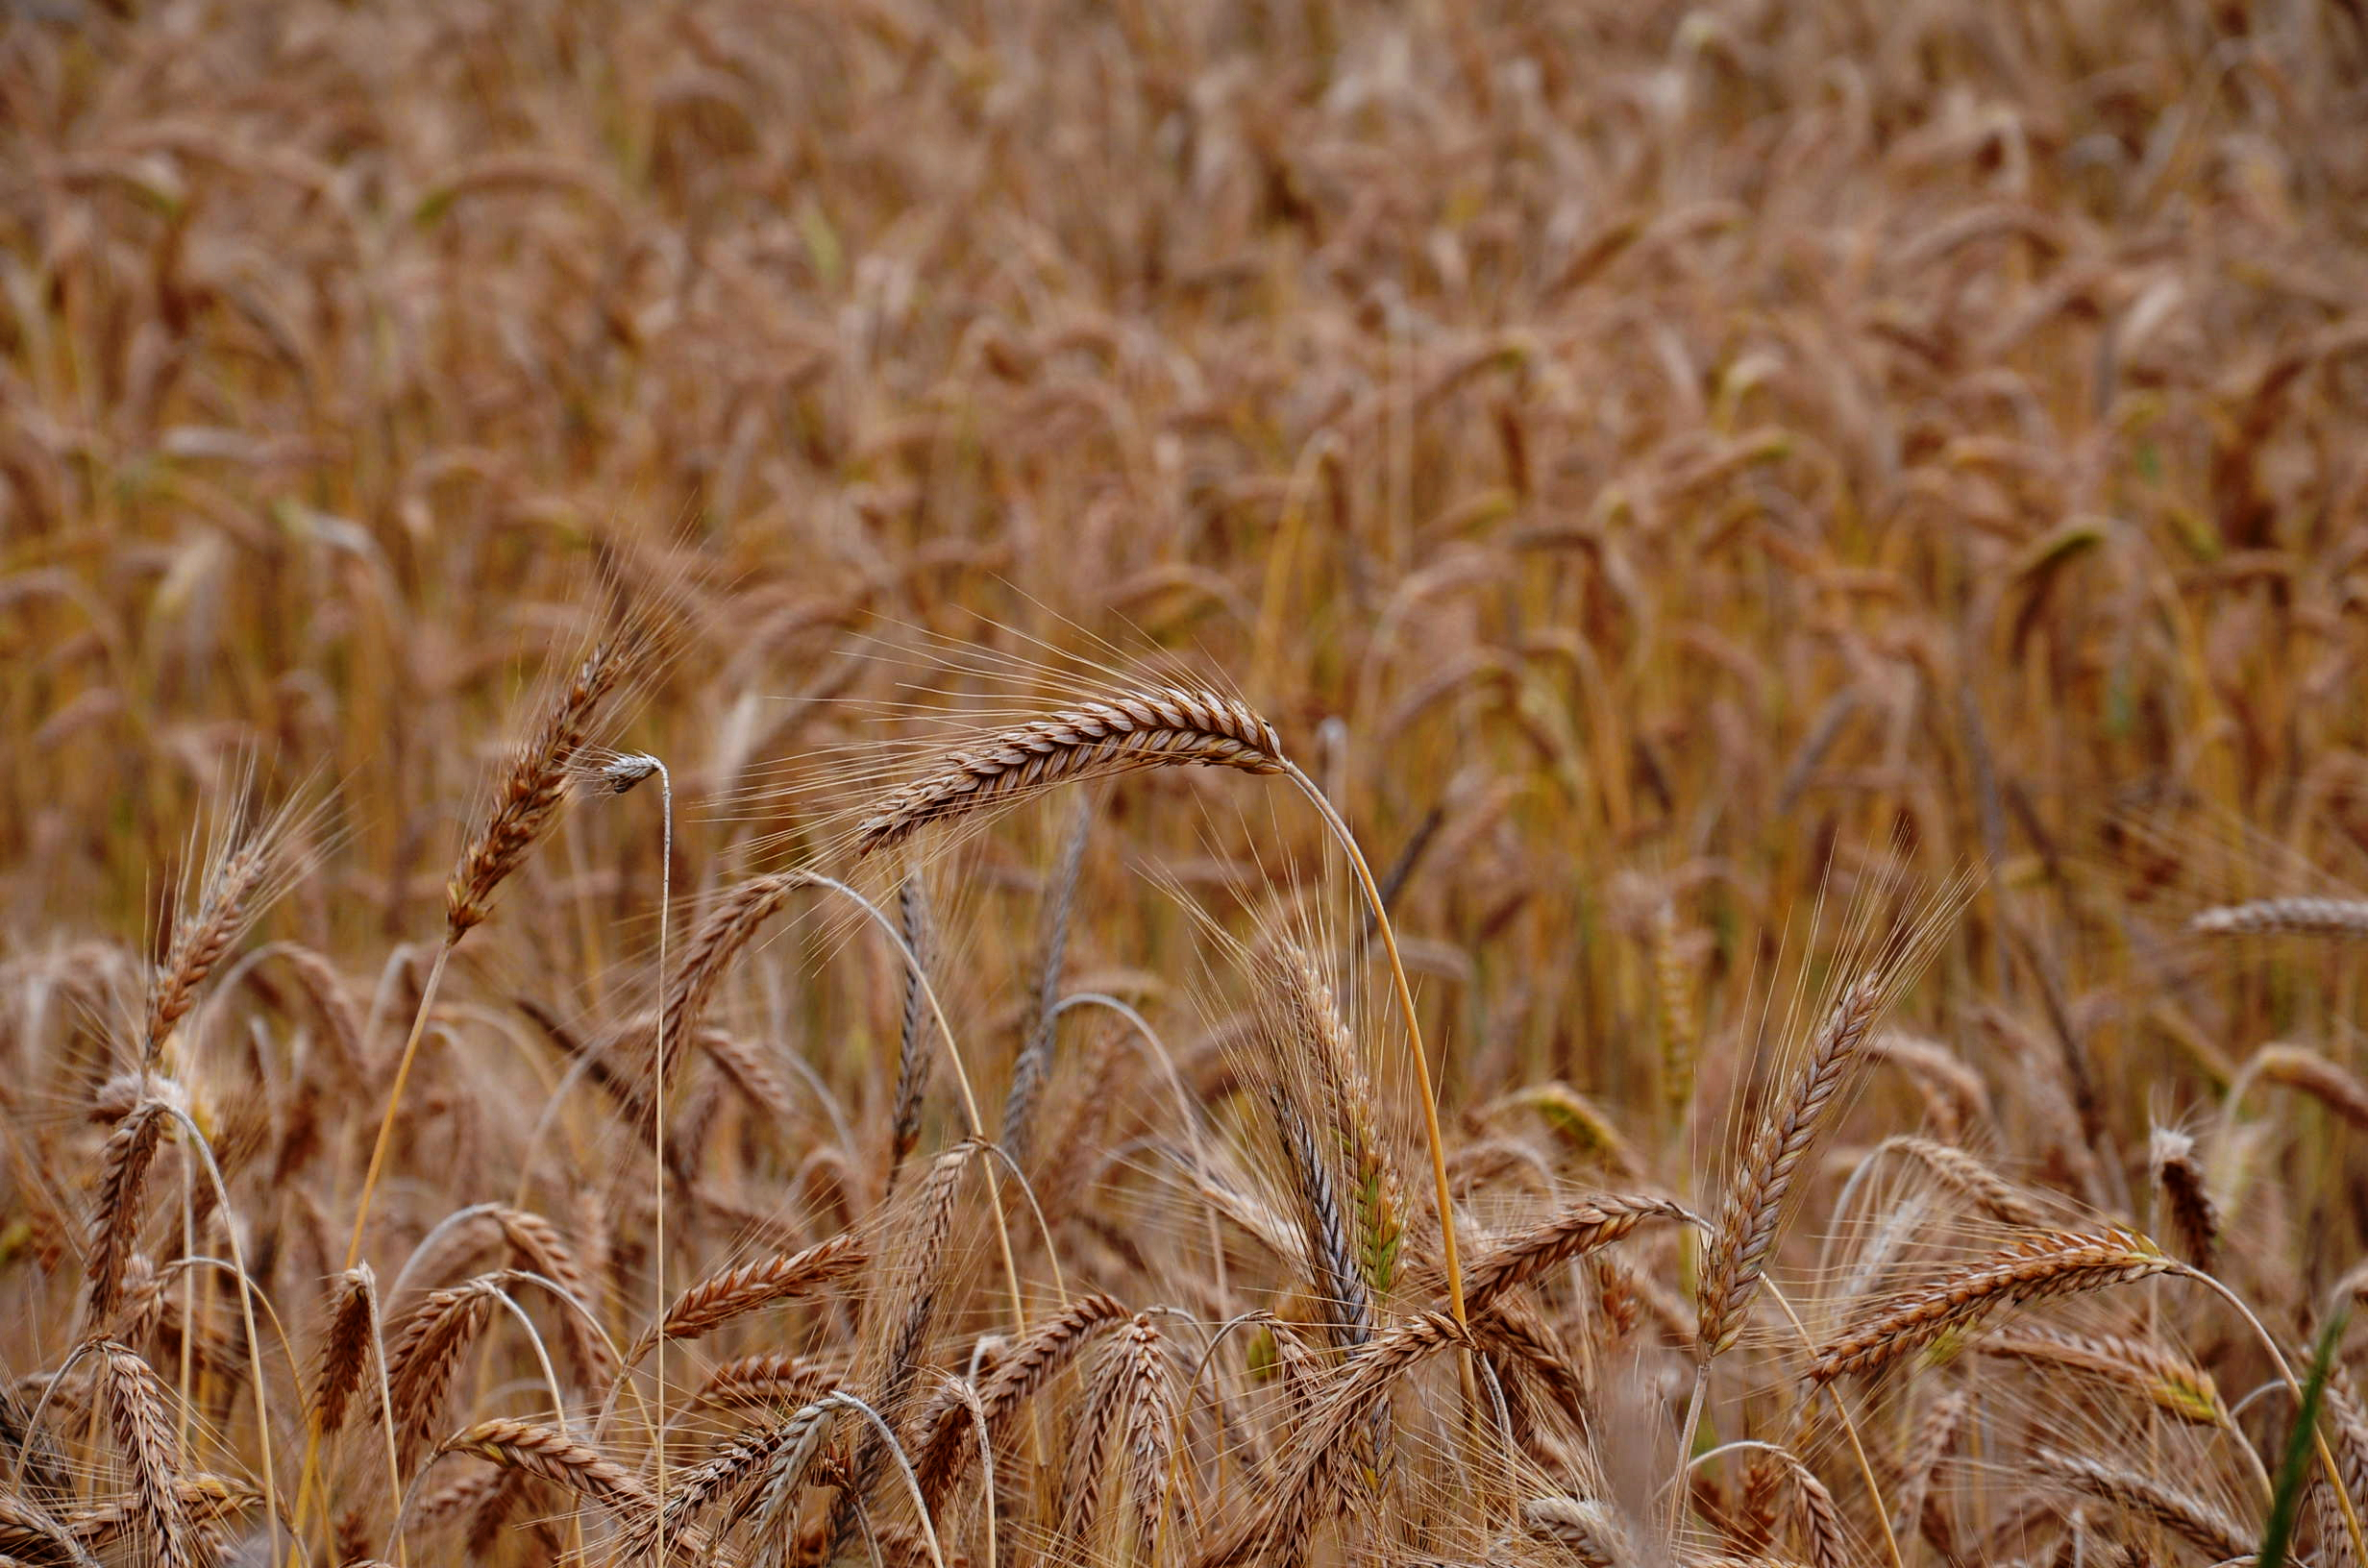 Wheat field, field, wheat, sunset, gold, gold, wheat, grains, crops, agriculture, nature, farm